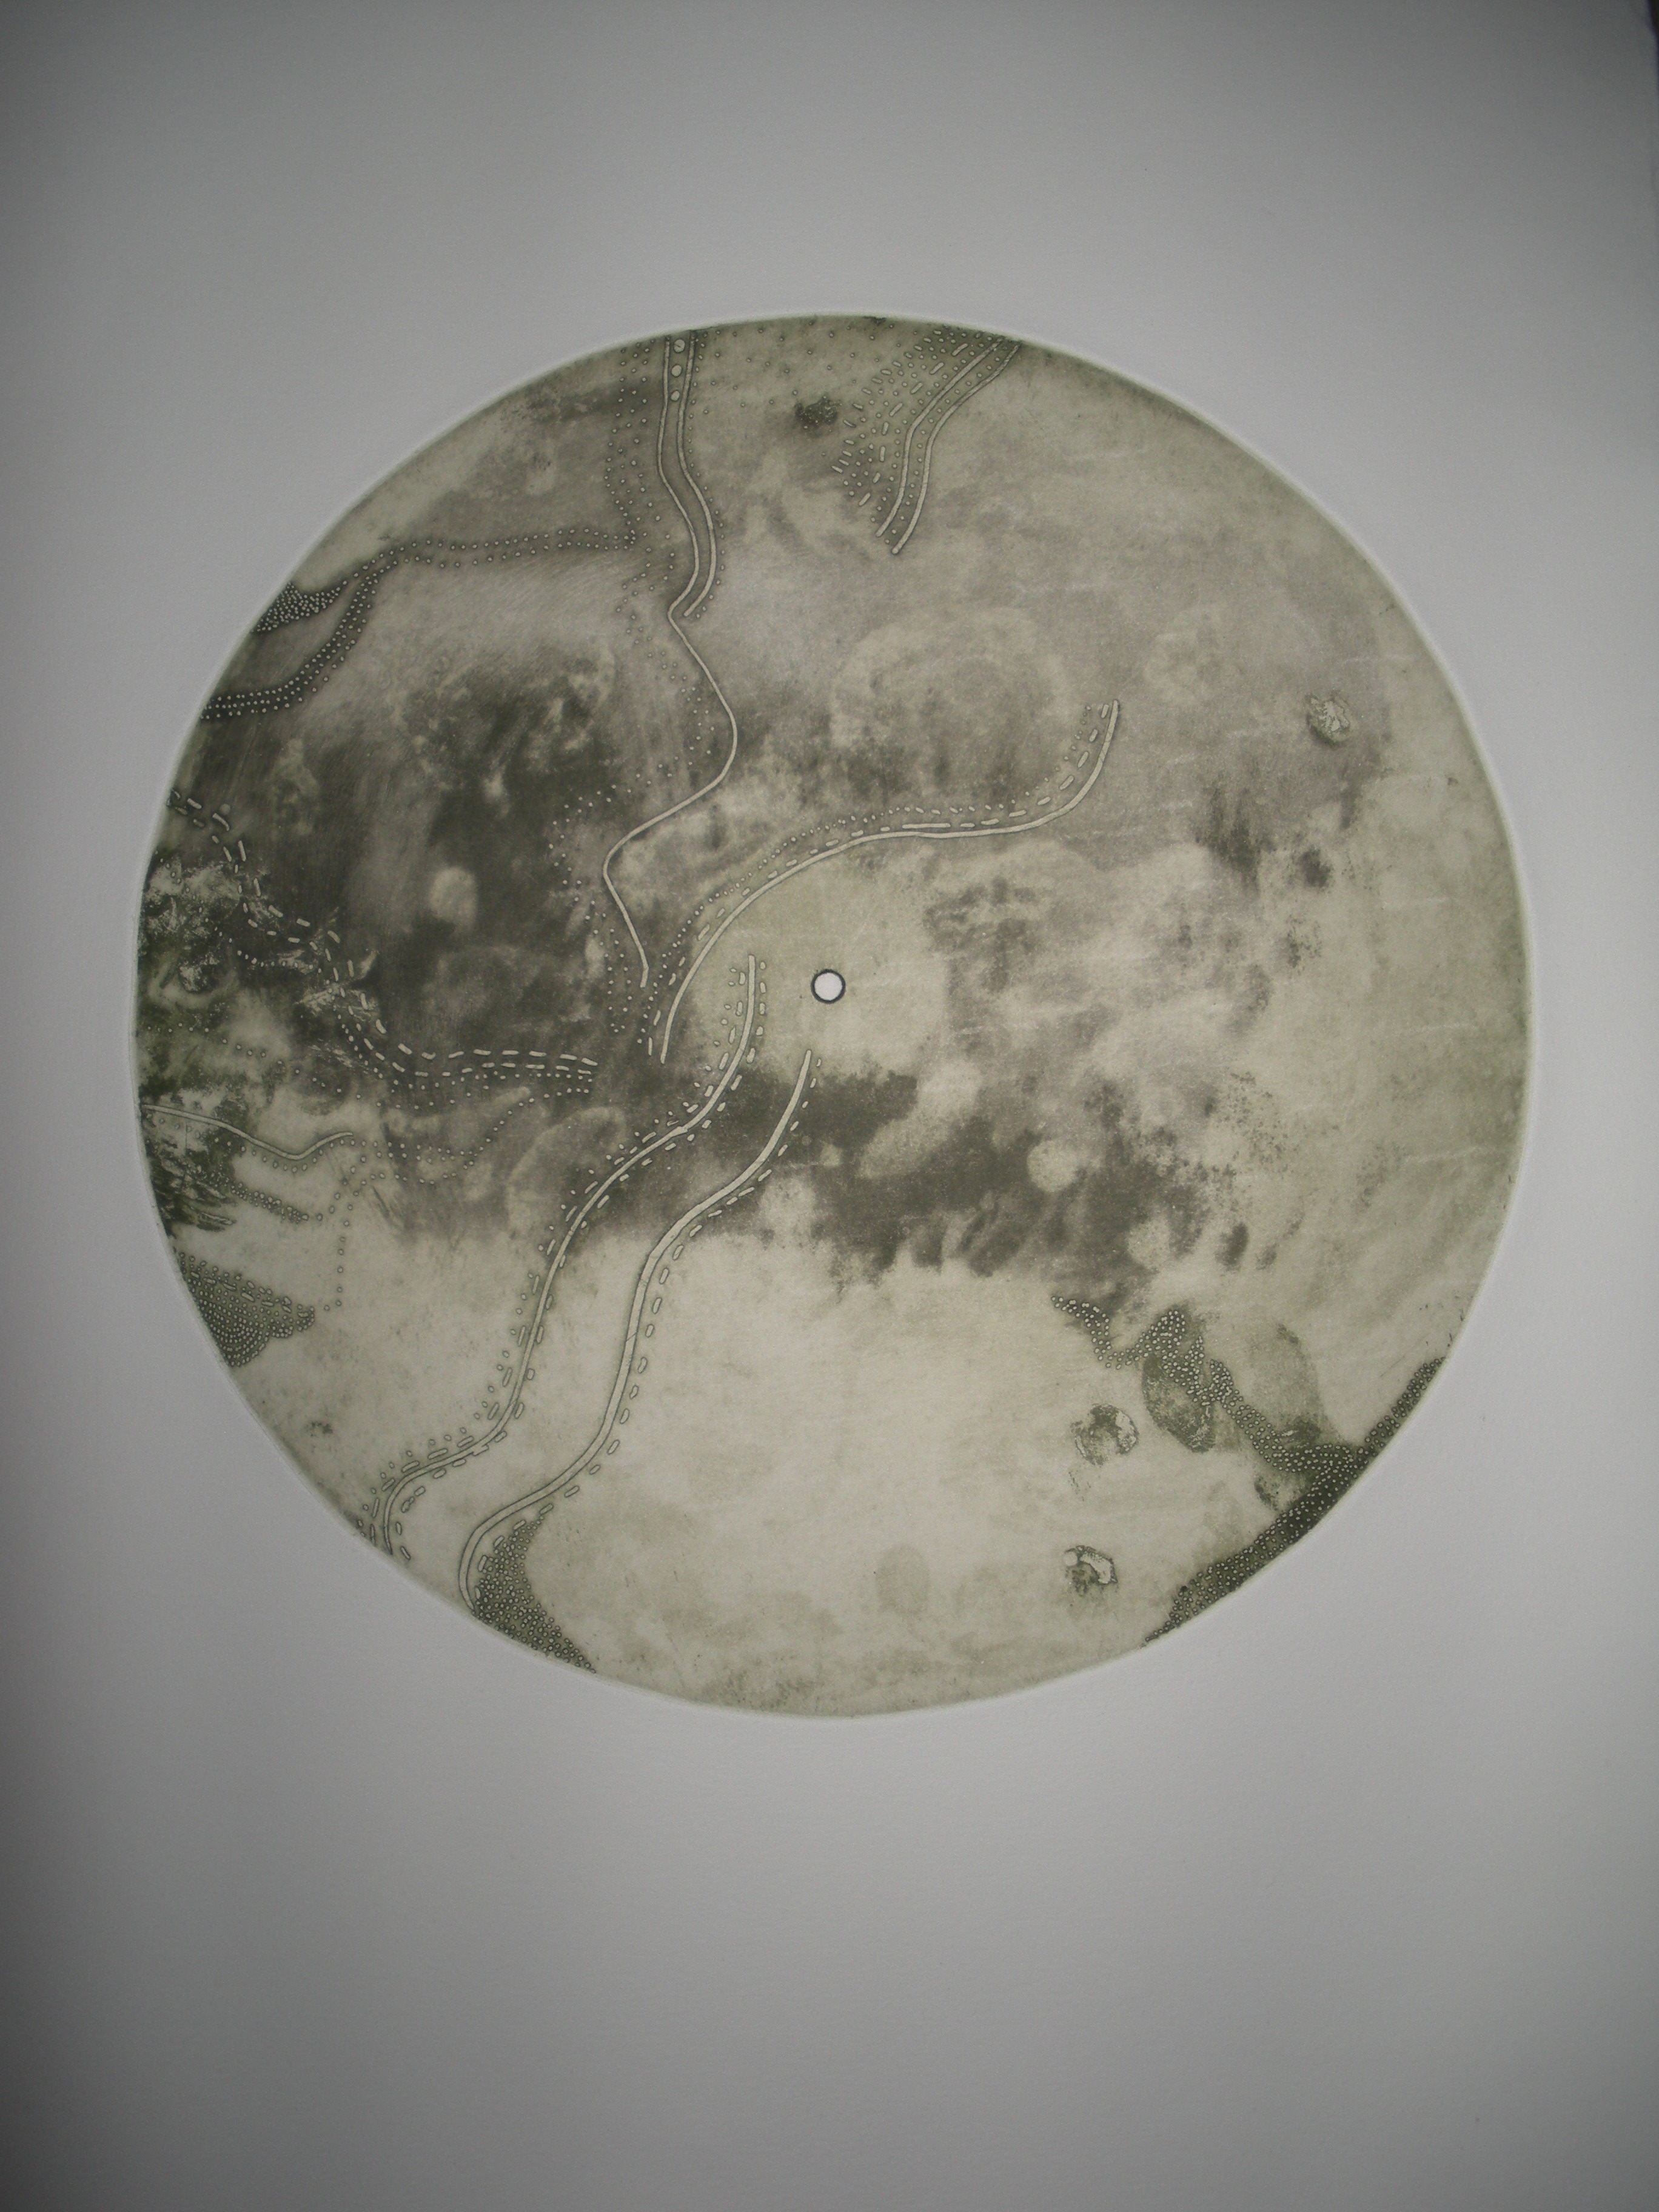 Through the Forest by Laura C George. Intaglio etching print.